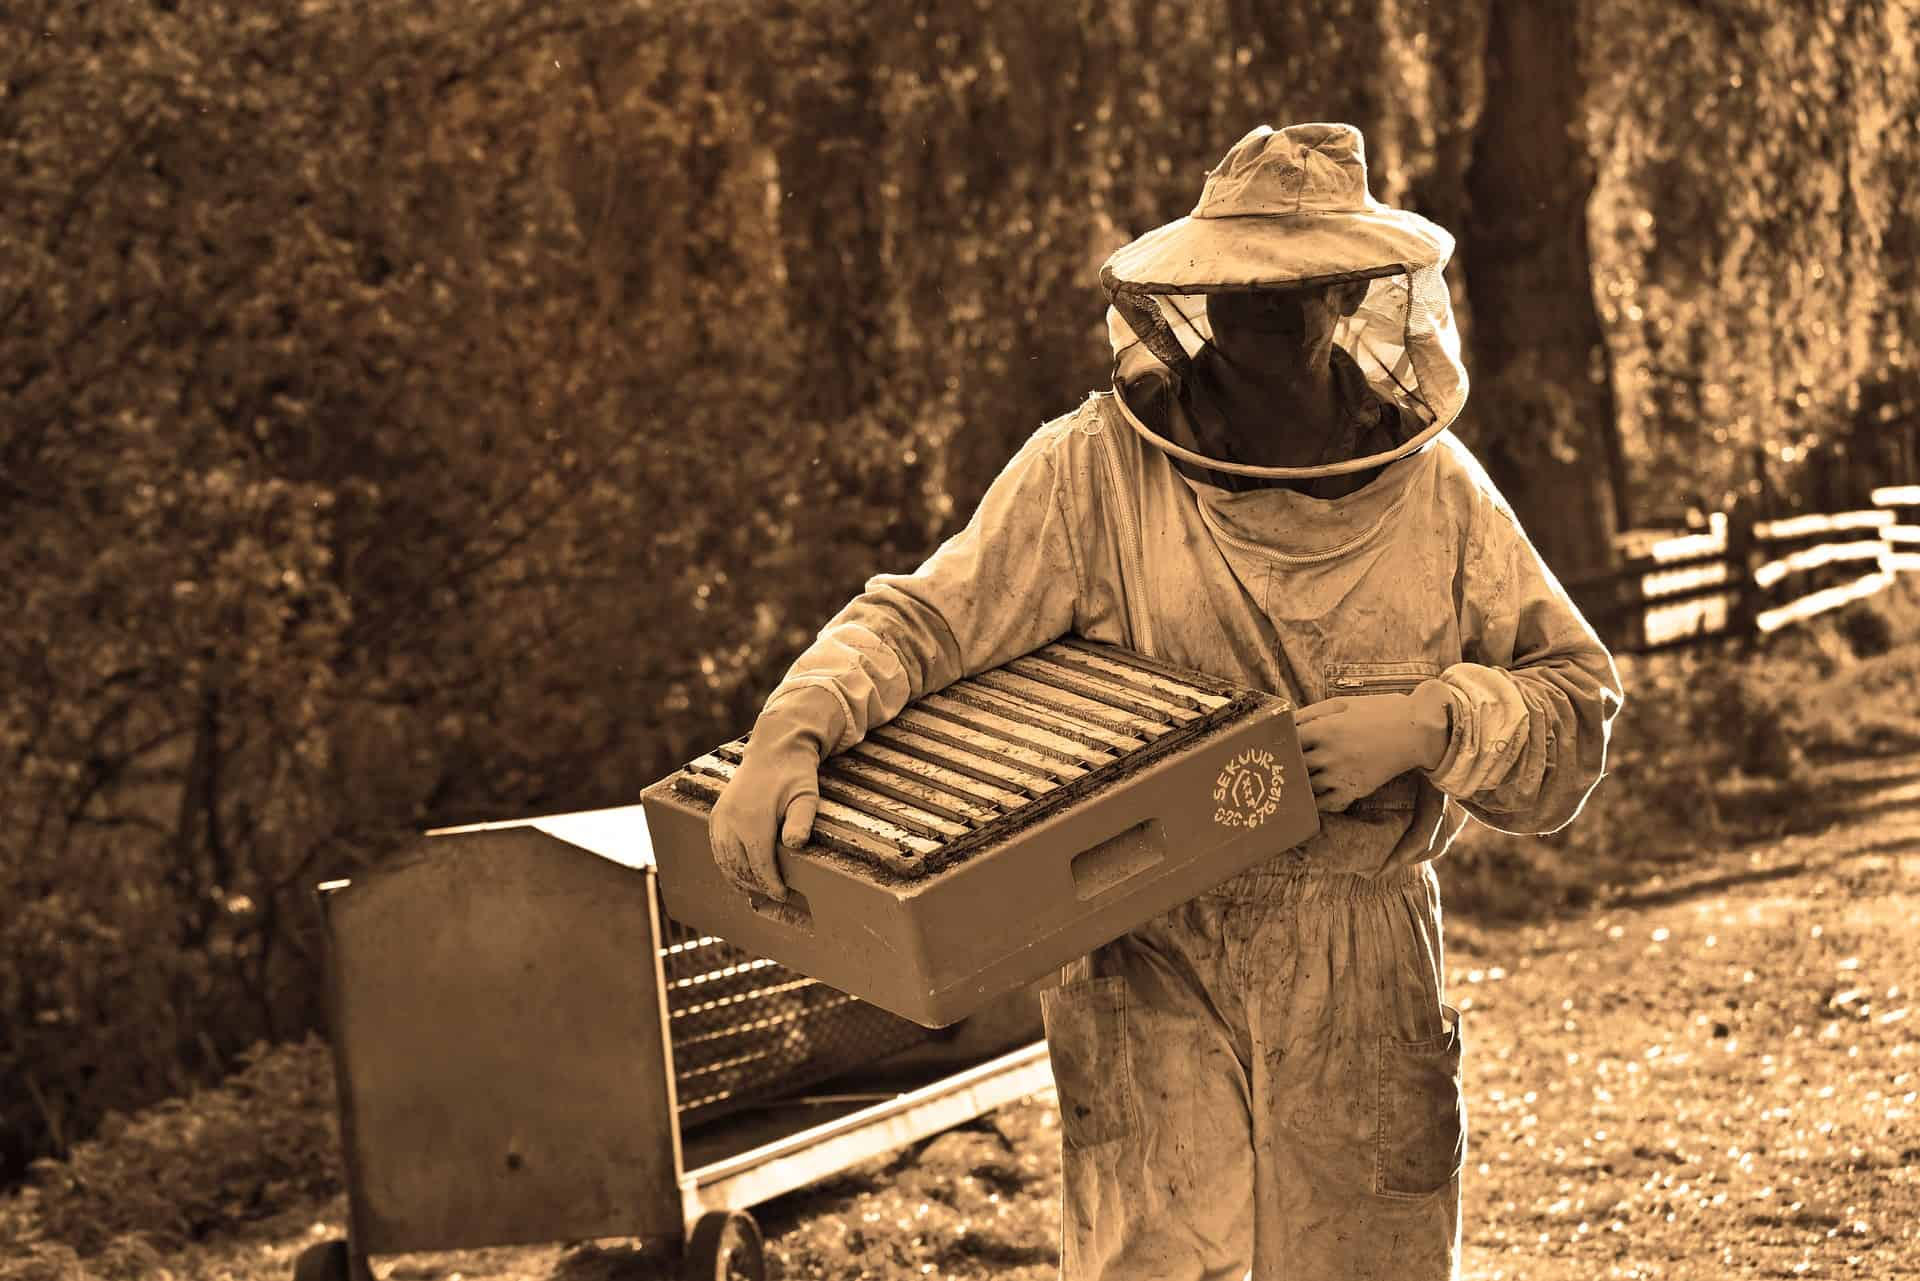 How to clean your beekeeping equipment